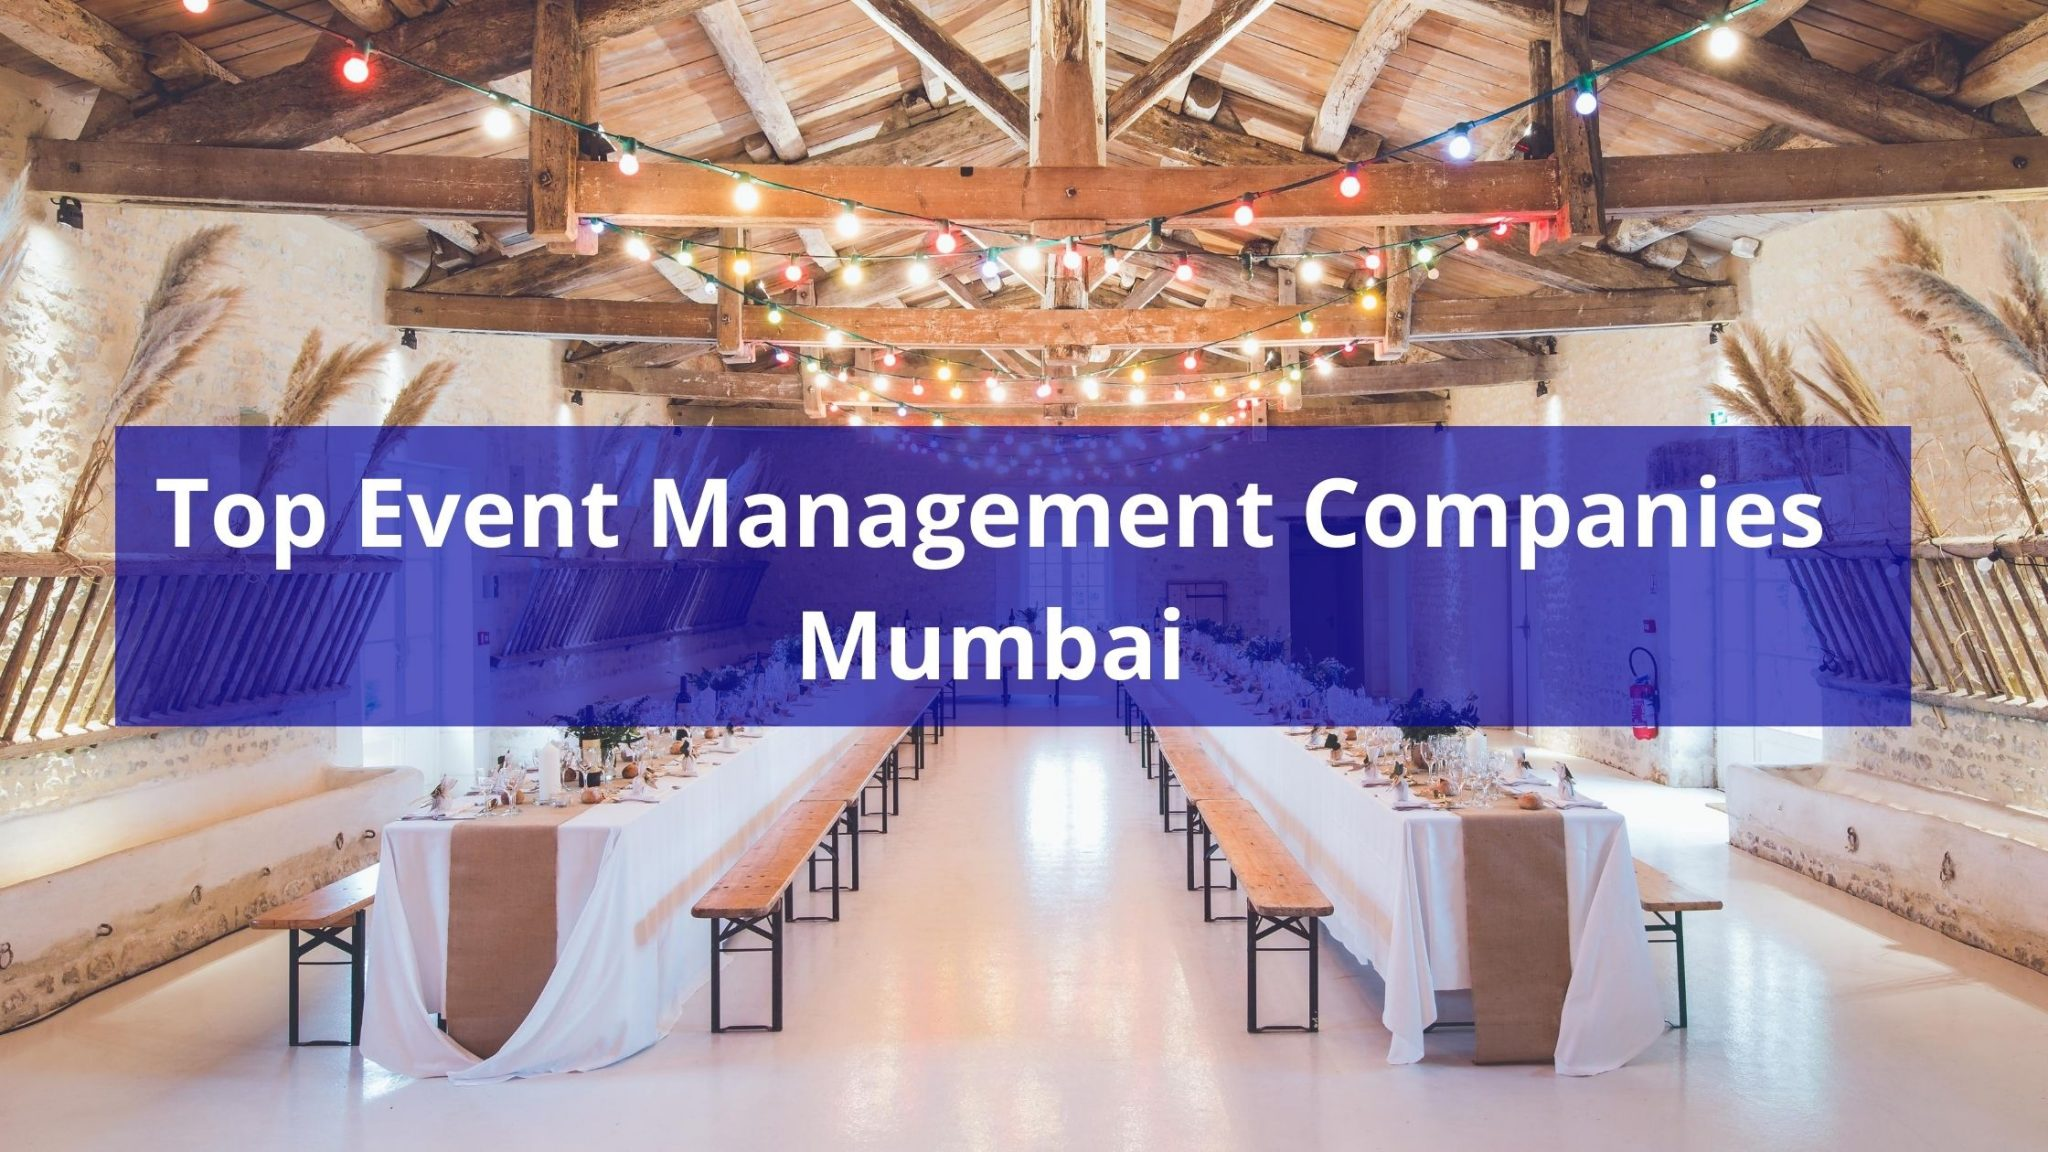 Top Event Management Companies Mumbai